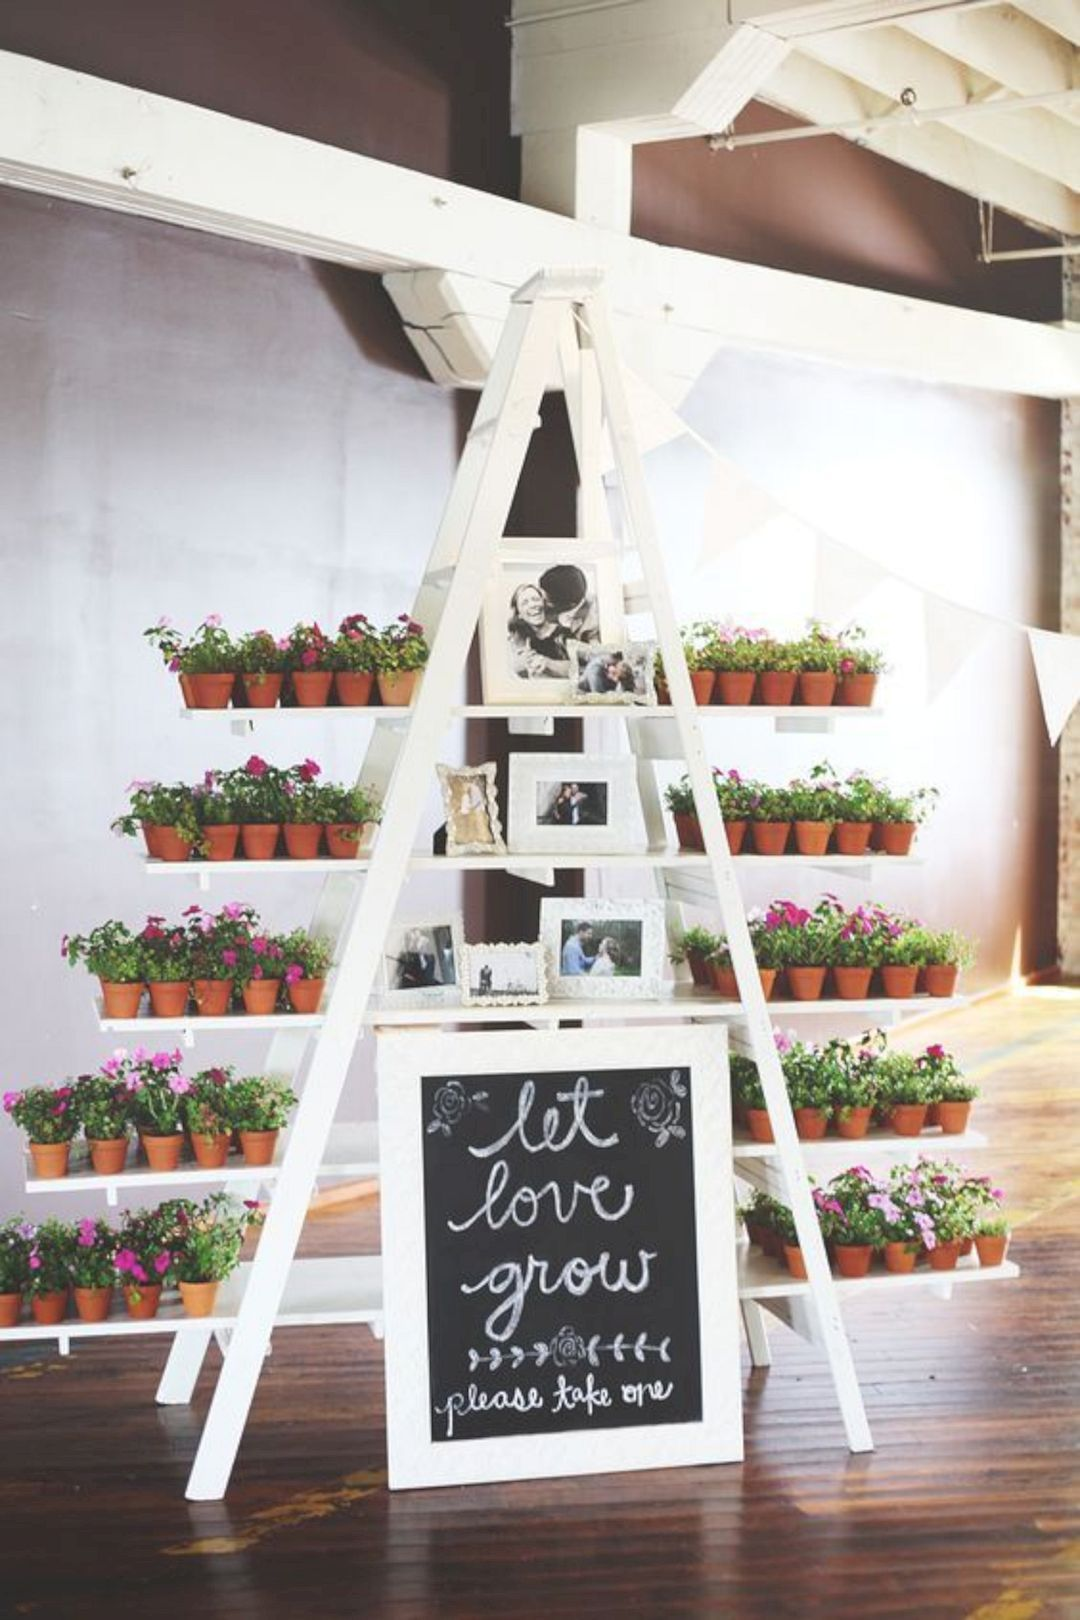 17 Cute Small Wedding Ideas | Weddings, Wedding and Bridezilla